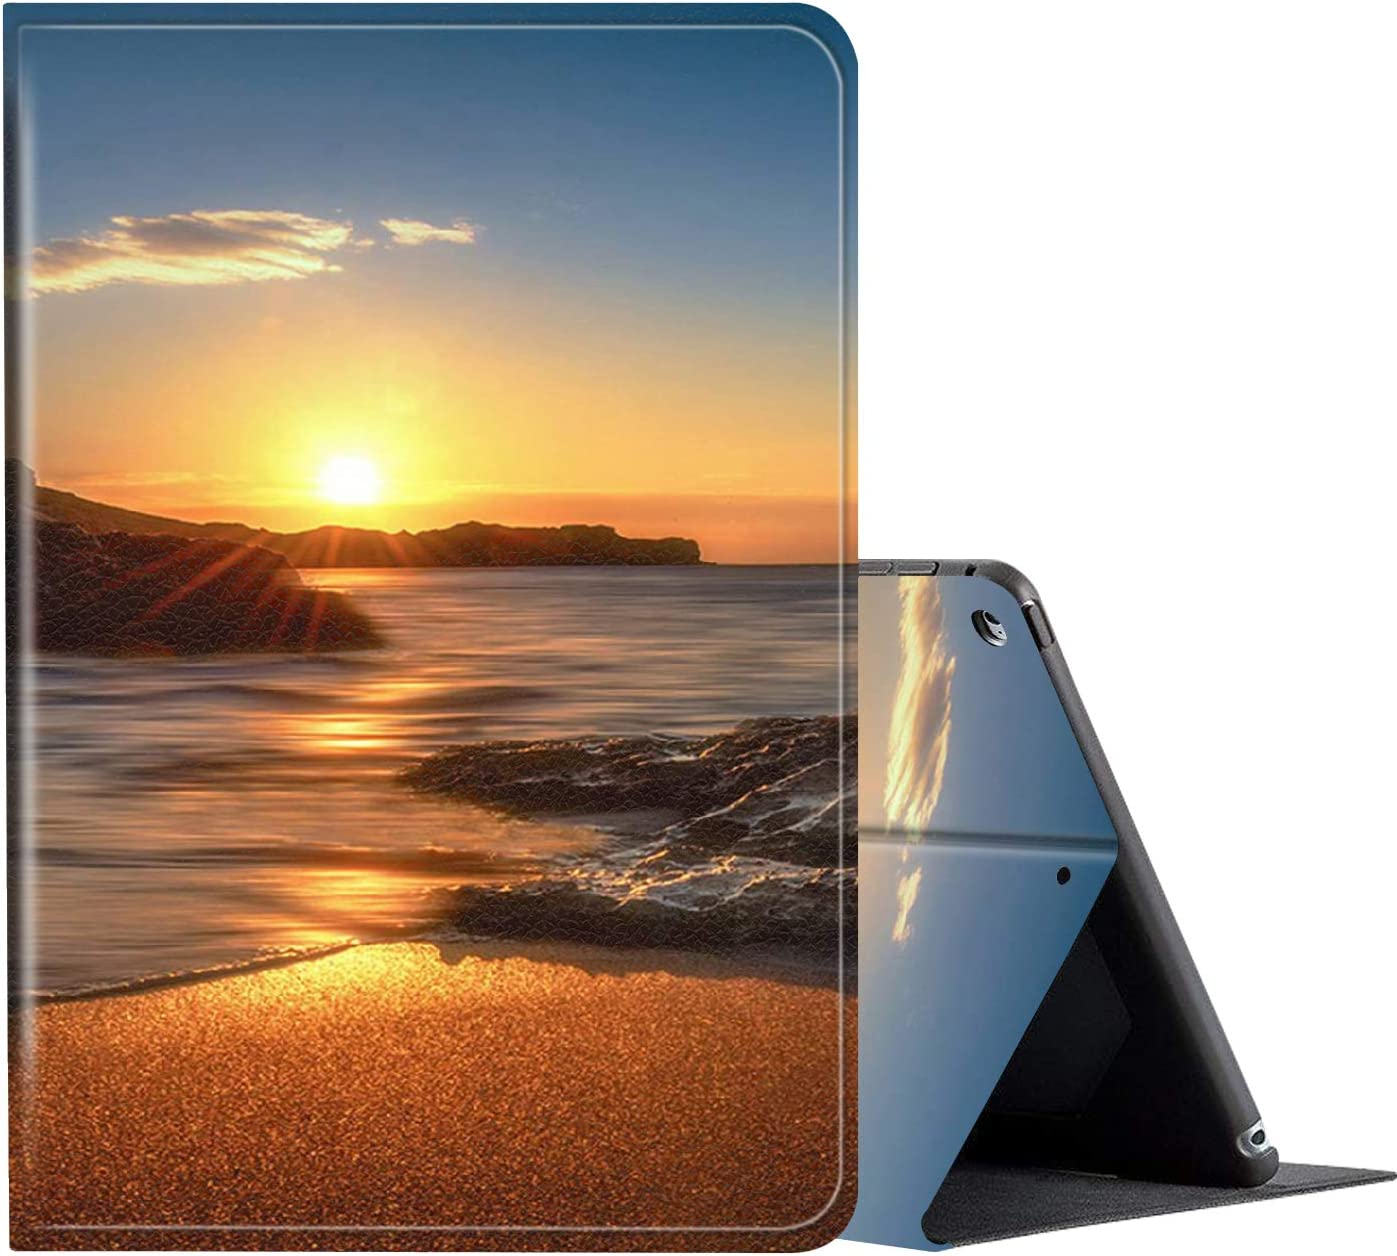 IPad 10.2 Inch 2019 Case, AMOOK PU Leather Adjustable Stand Cover Protection with Auto Wake/Sleep Smart Cover for Apple iPad 7th Gen-Sunrise Beach